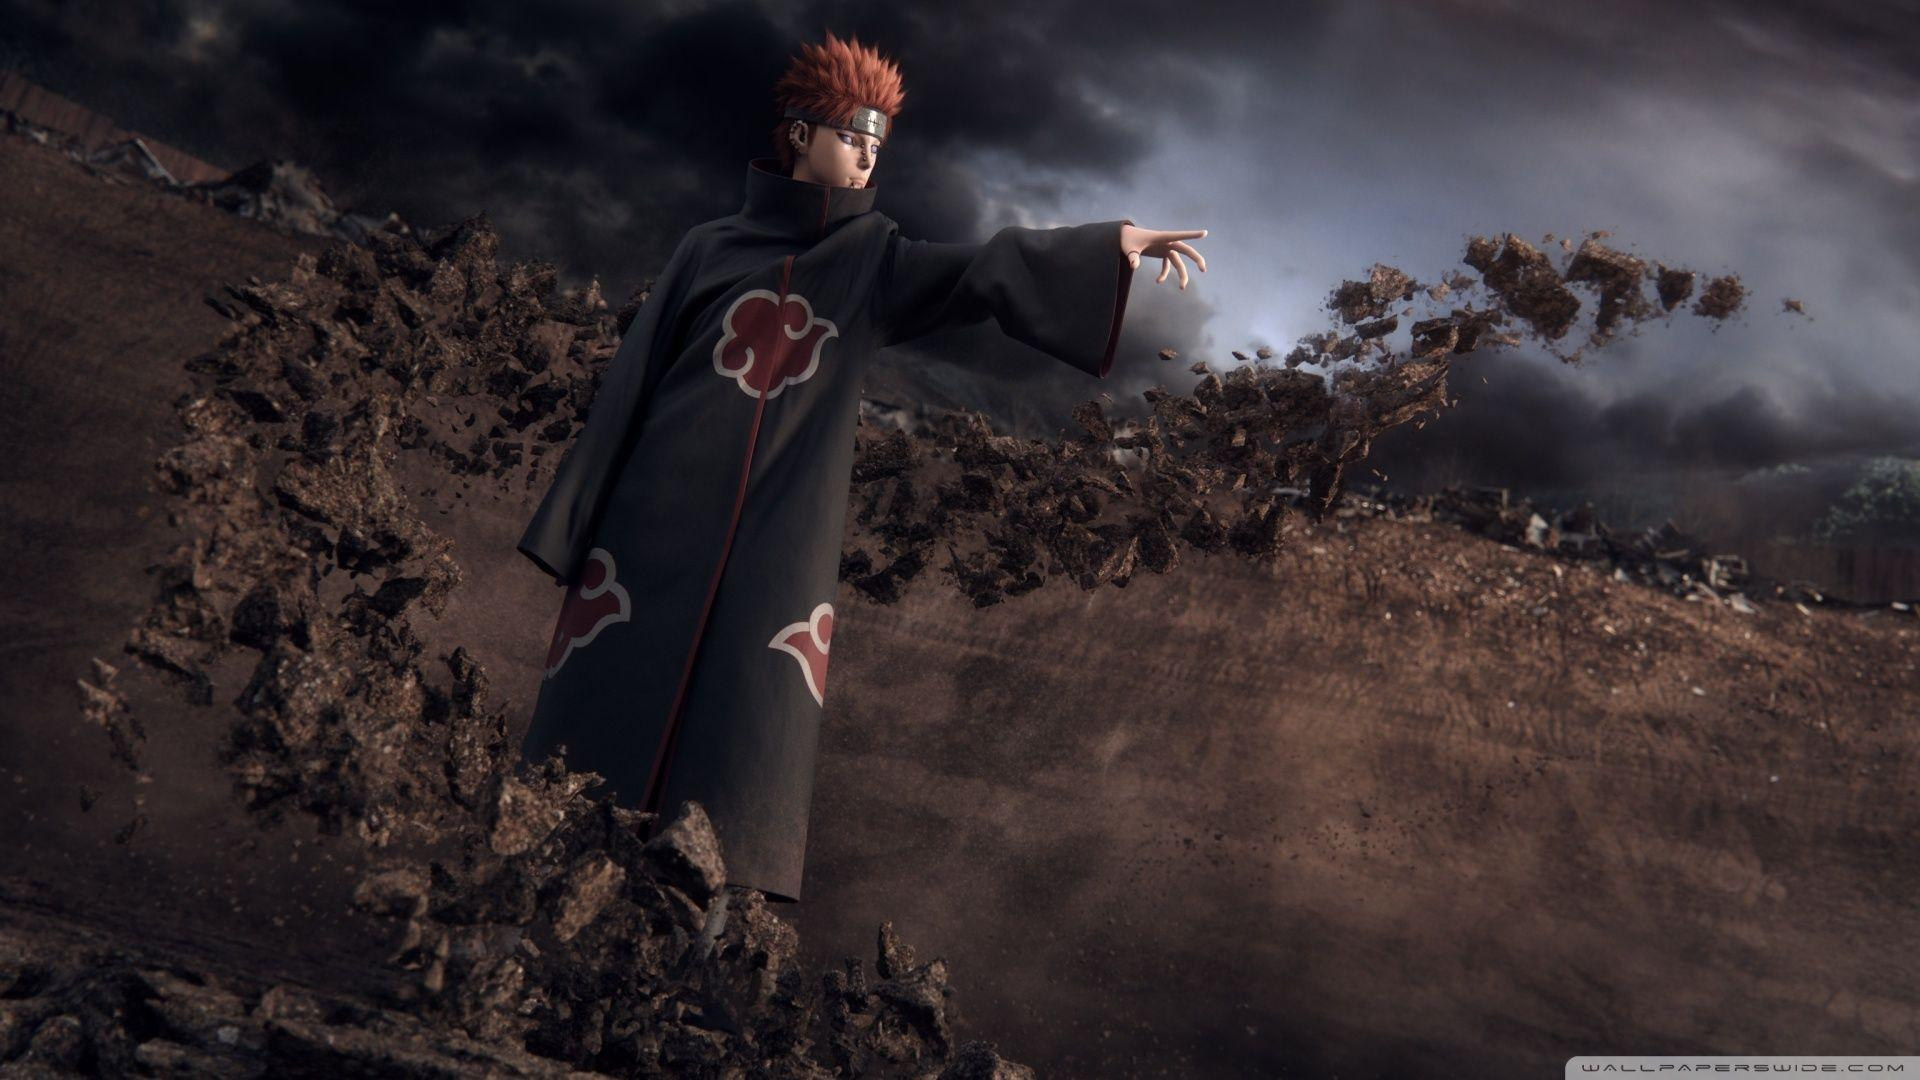 Naruto Shippuden Wallpapers 1920x1080 Wallpaper Cave